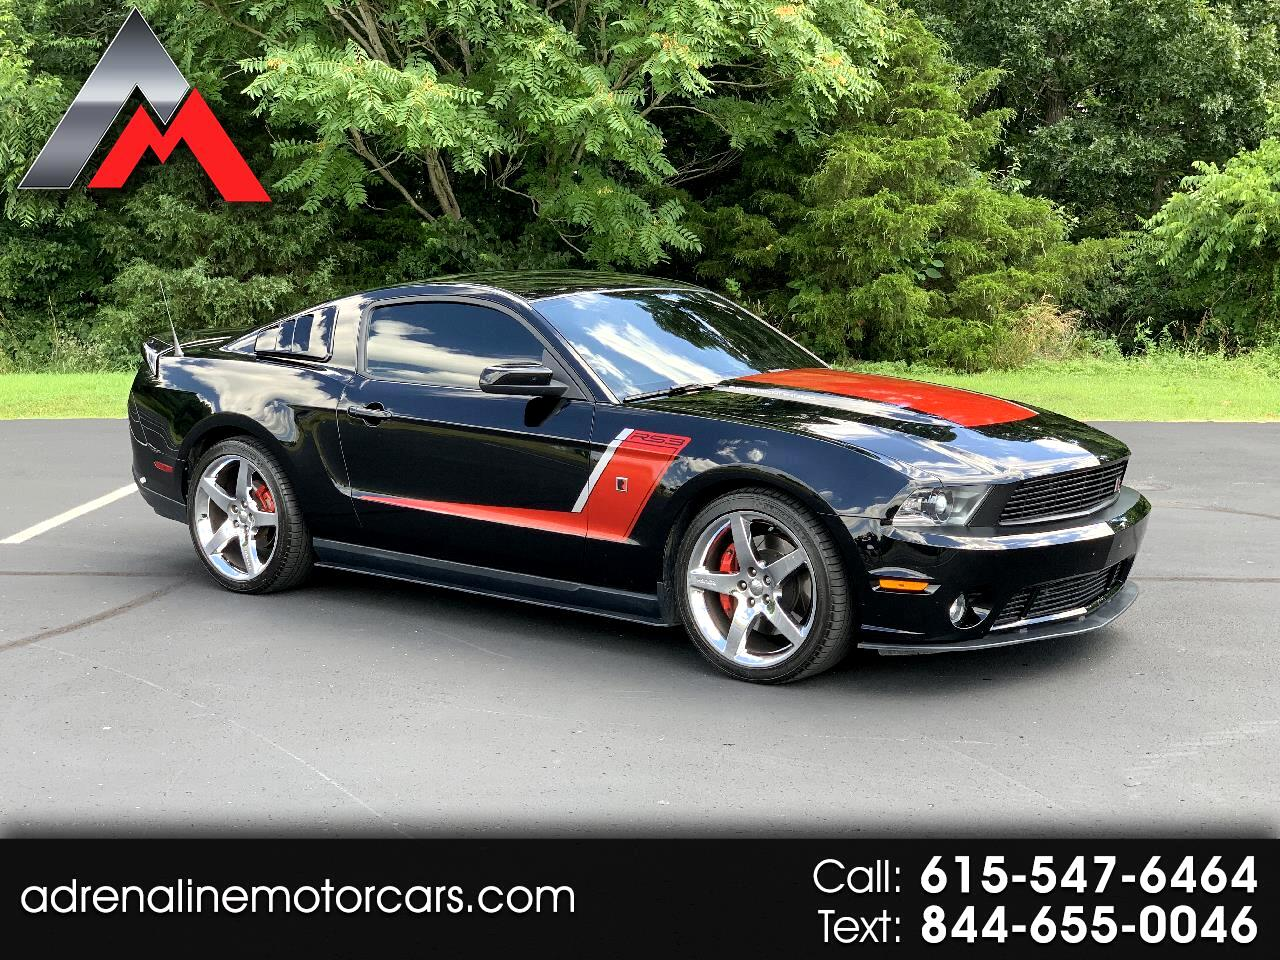 Ford Mustang Roush Coupe Supercharged 2012